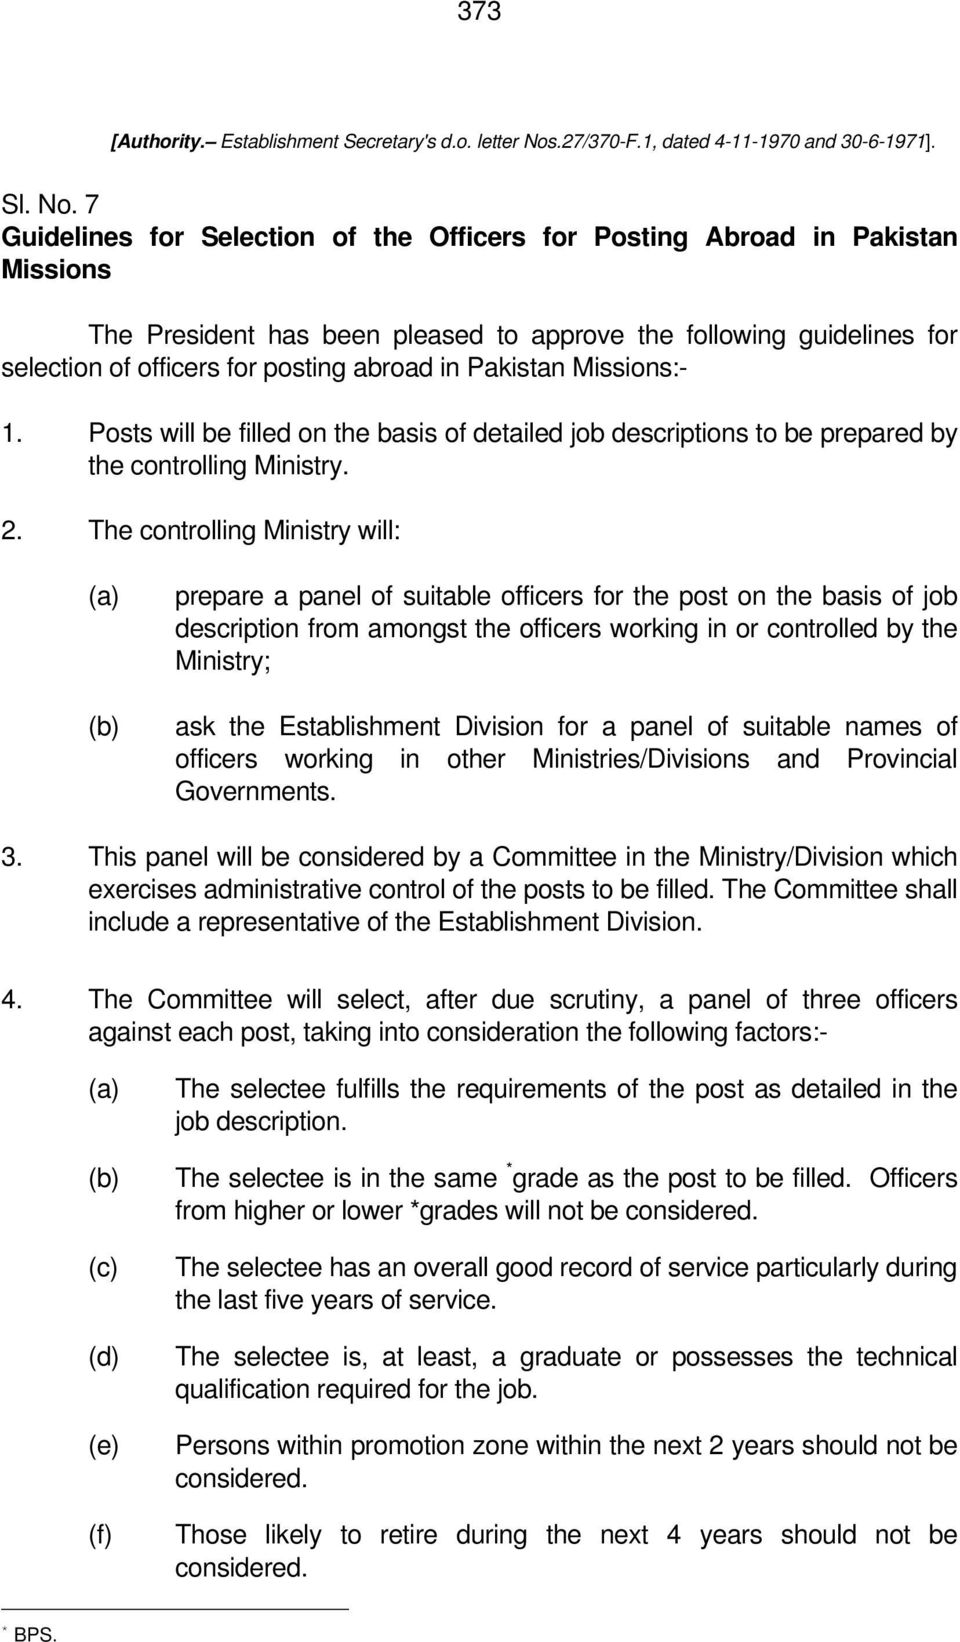 7 Guidelines for Selection of the Officers for Posting Abroad in Pakistan Missions The President has been pleased to approve the following guidelines for selection of officers for posting abroad in